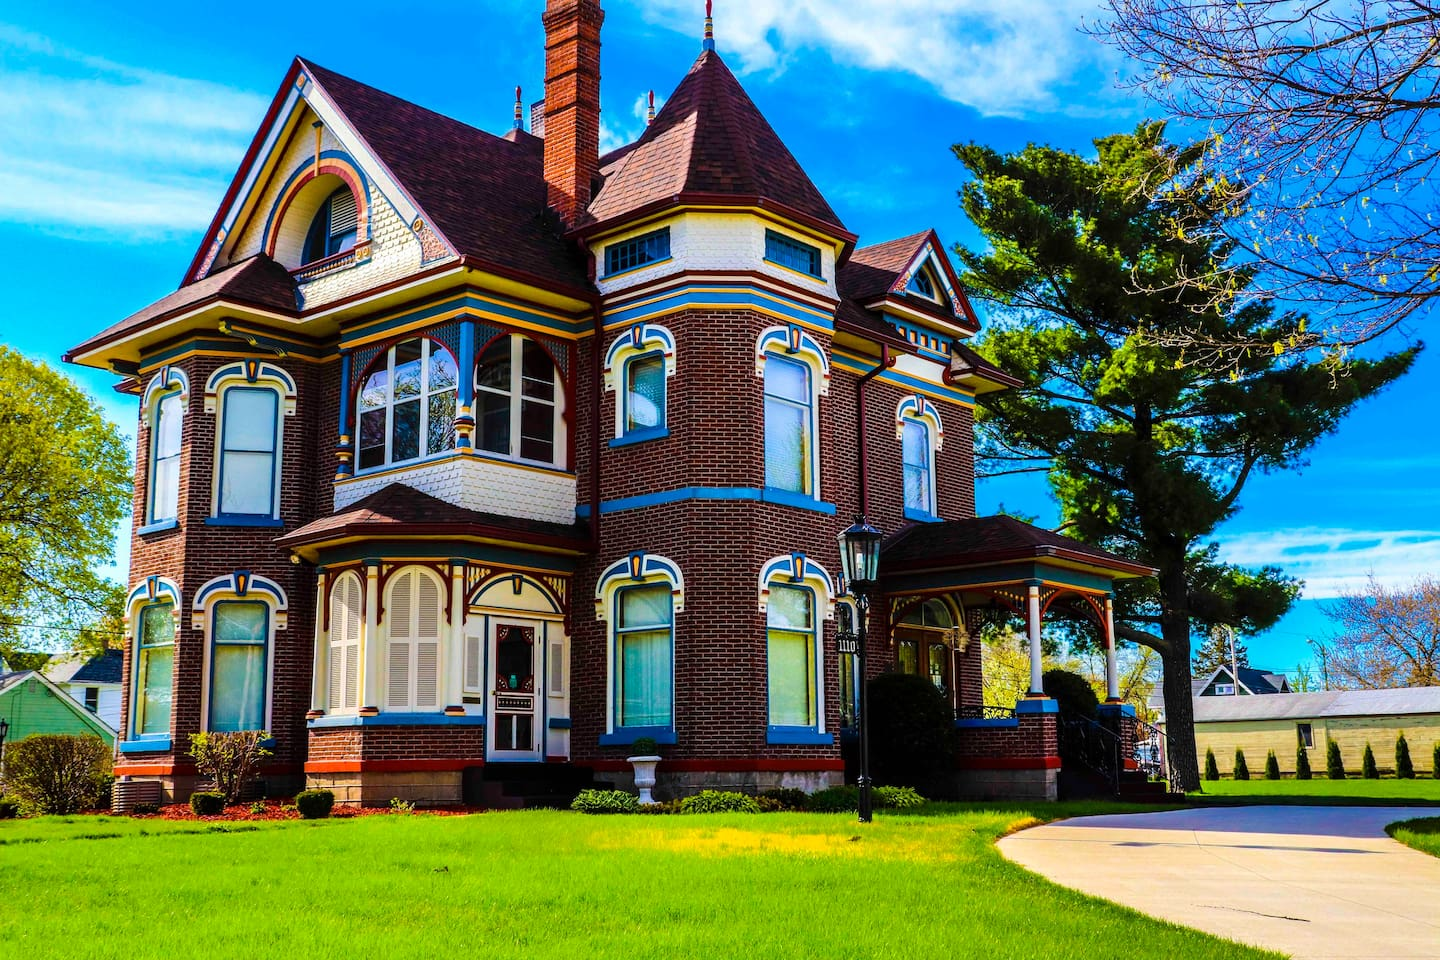 Color your world beautiful with a Queen Anne stay.